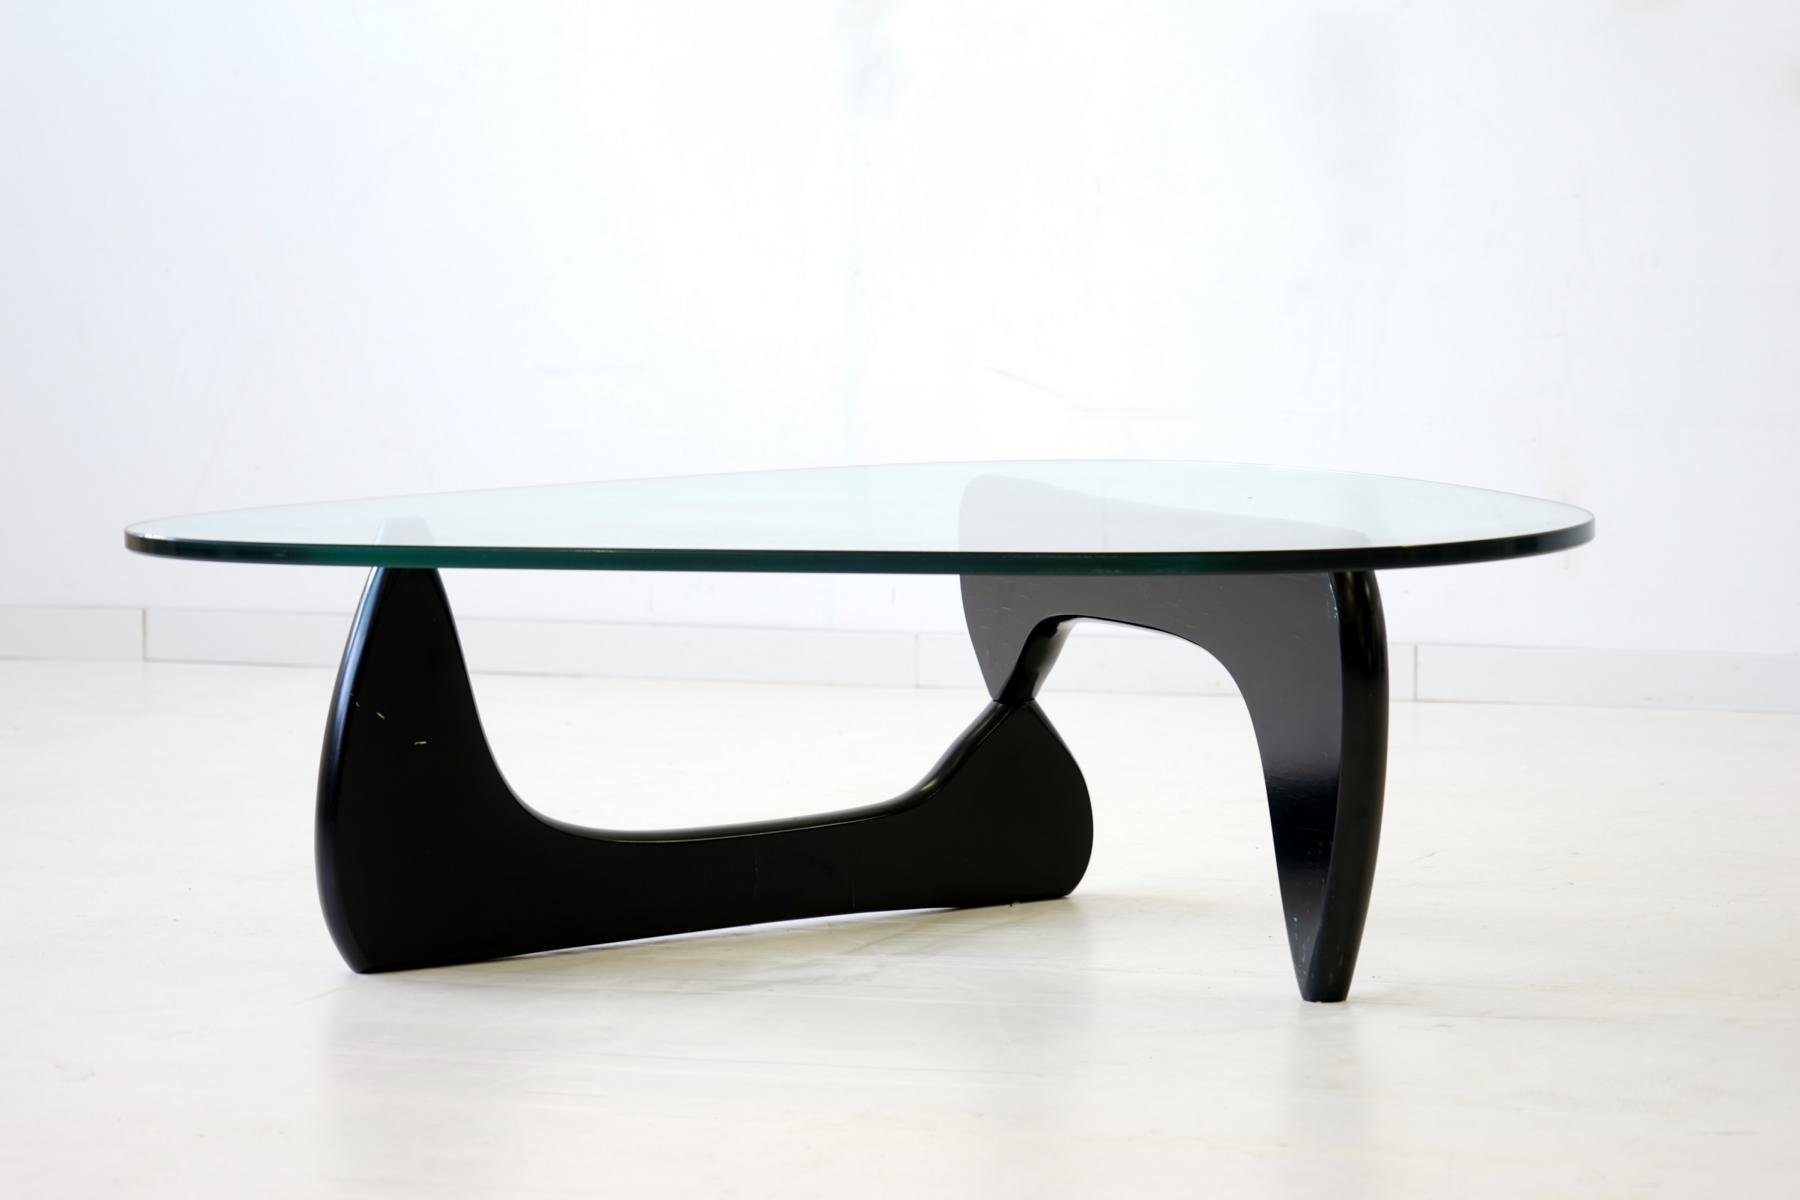 Mesa Centro Noguchi Glass Coffee Table By Isamu Noguchi For Herman Miller